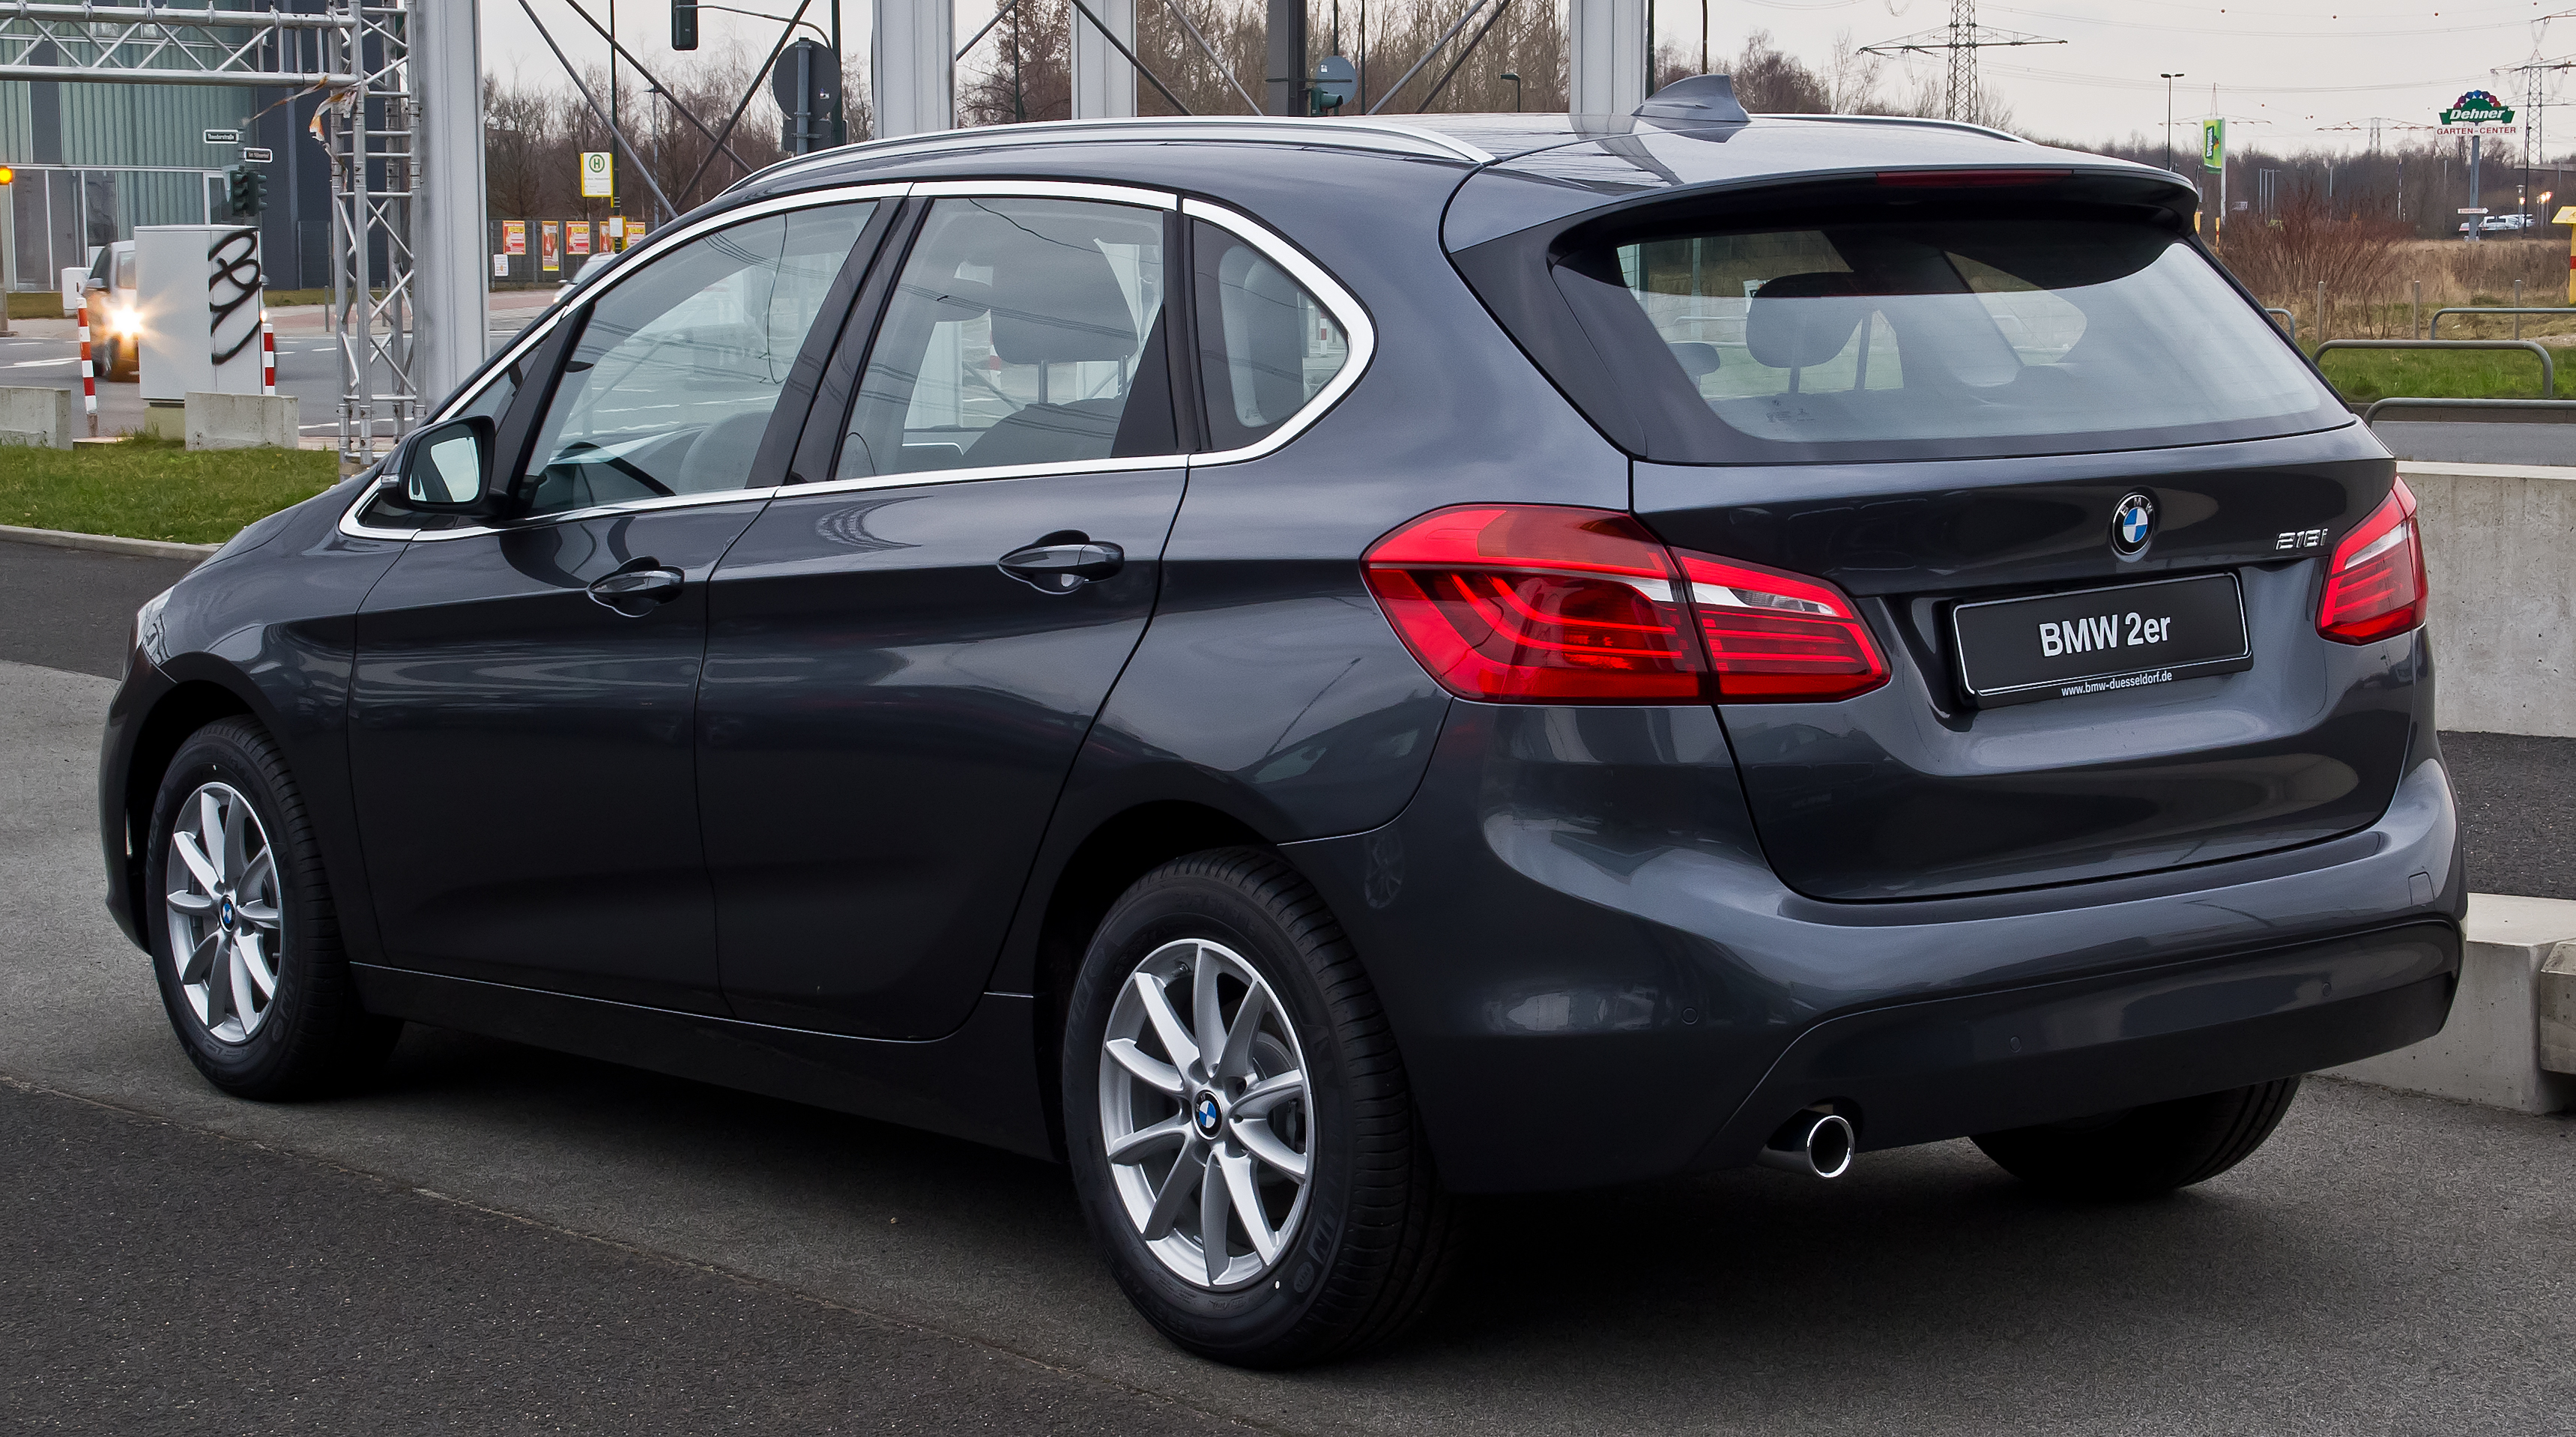 bmw 2er active tourer wikipedia autos post. Black Bedroom Furniture Sets. Home Design Ideas